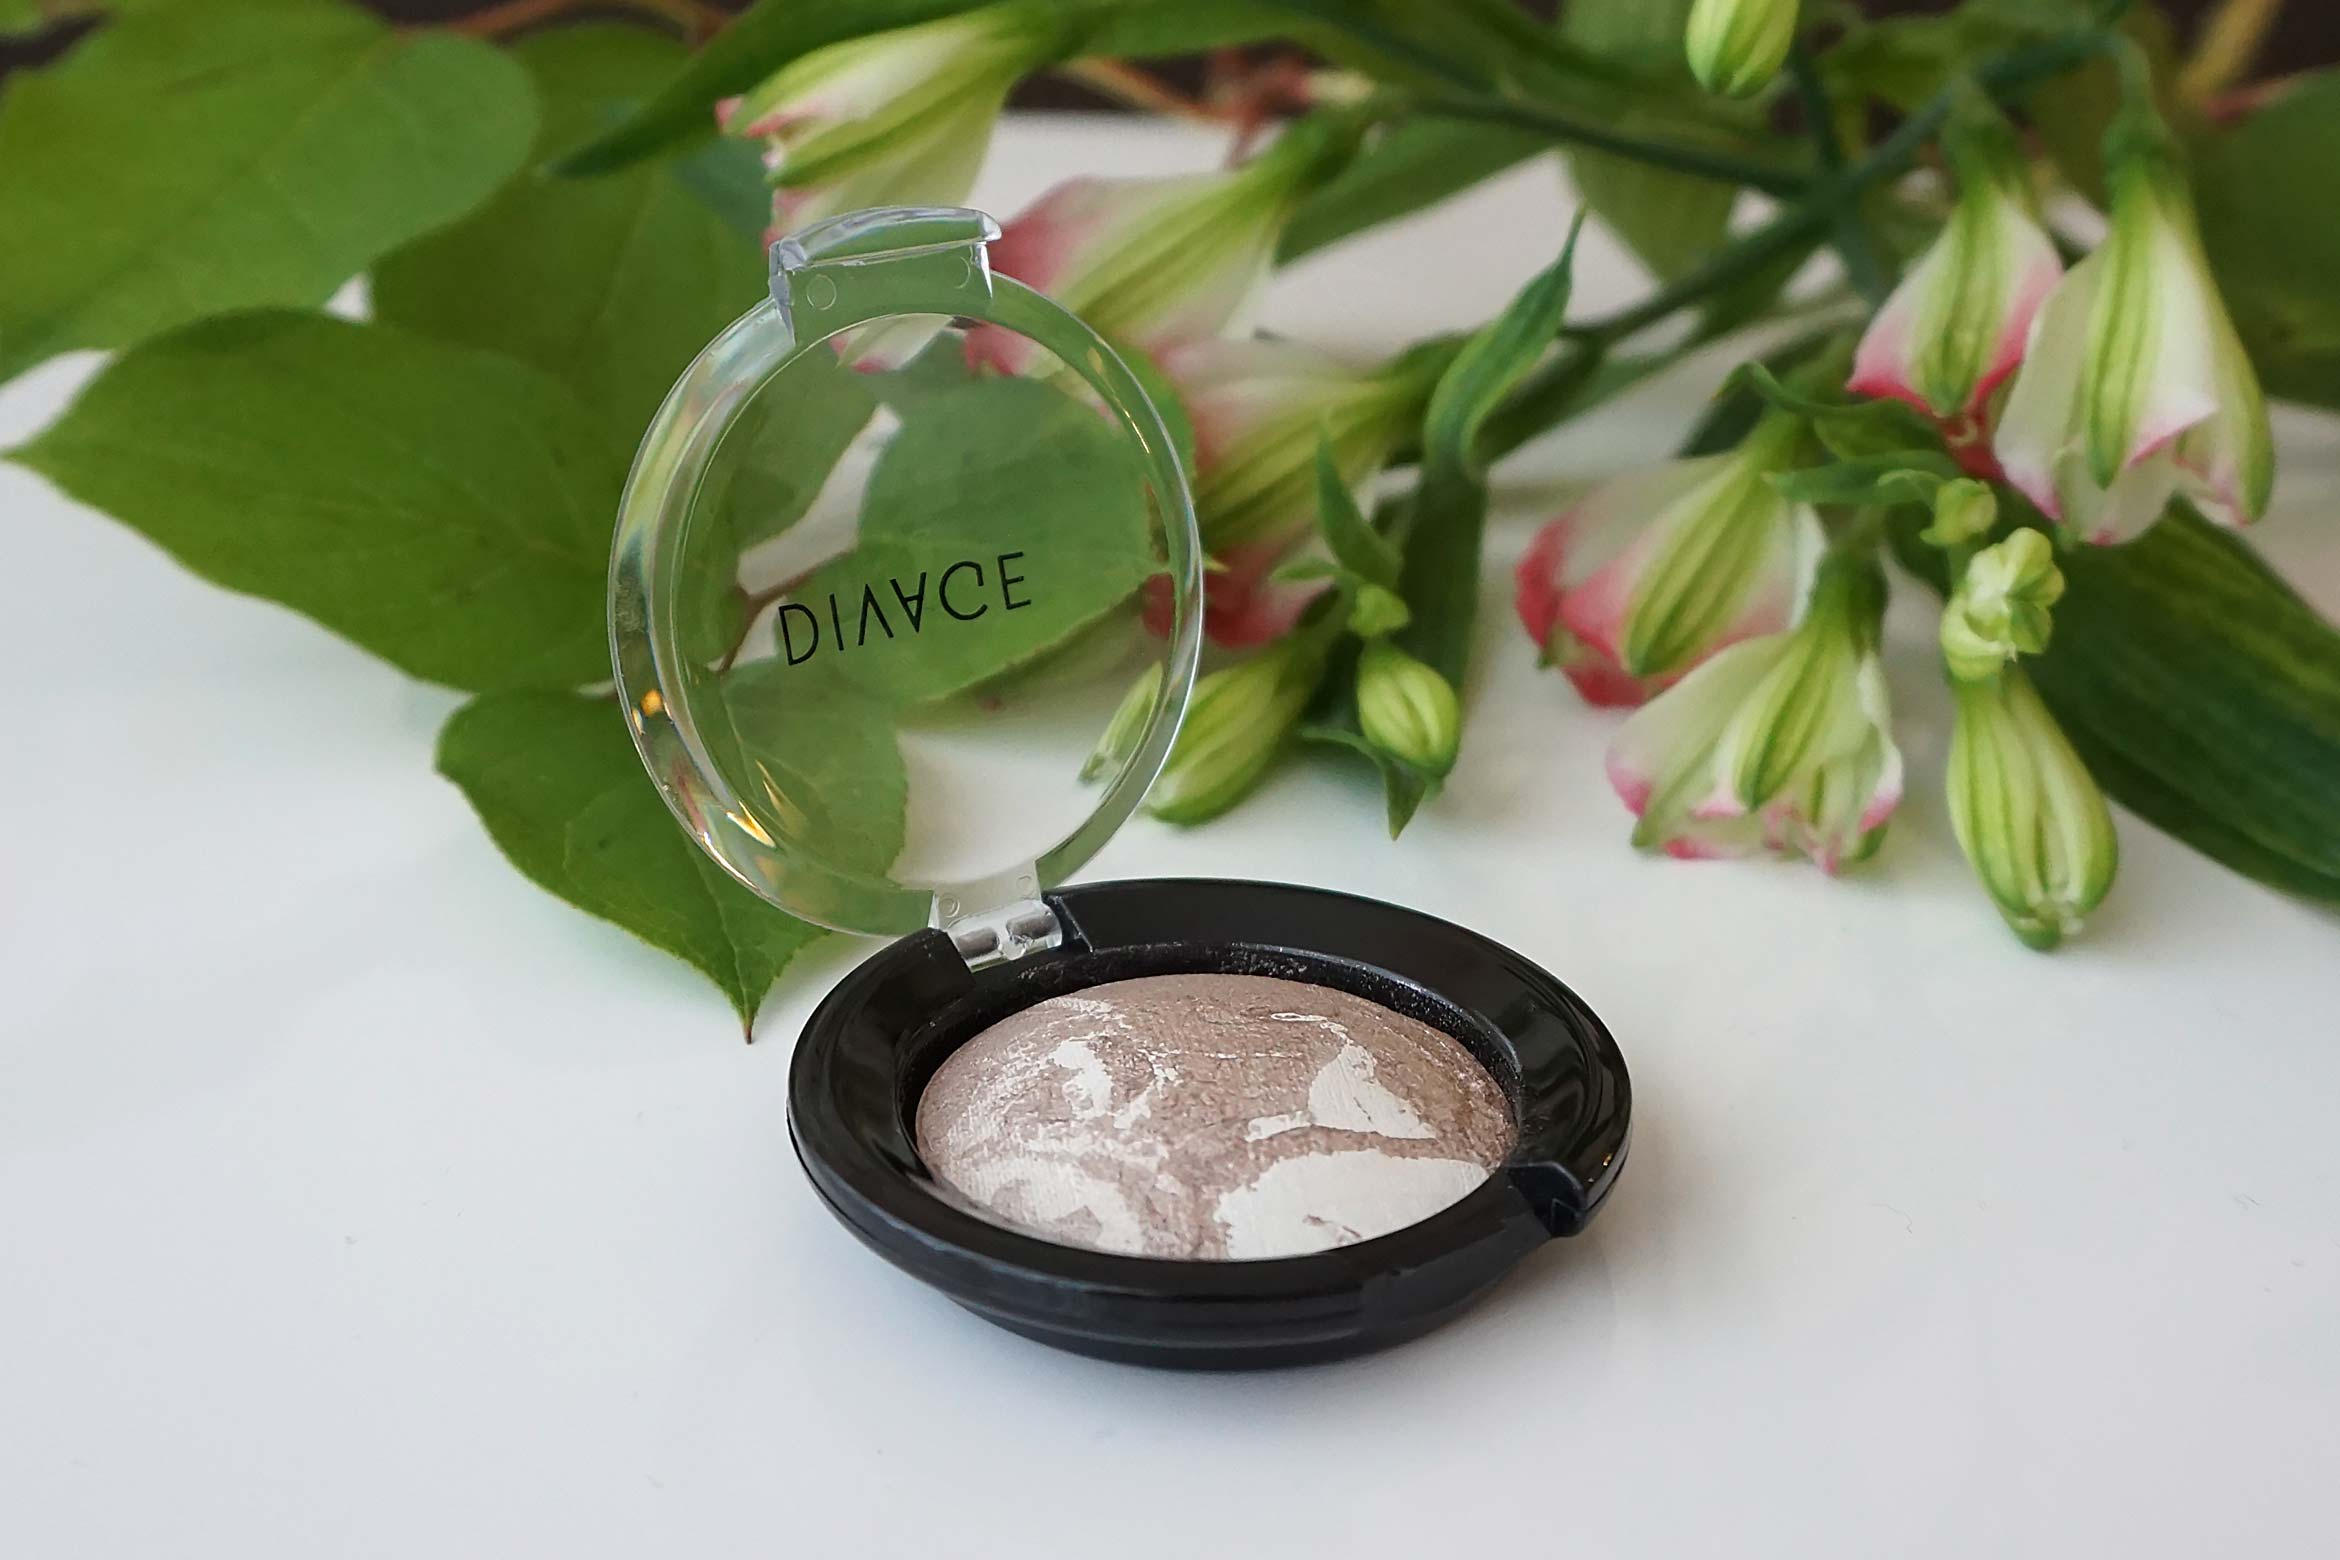 divage-colour-sphere-baked-eyeshadow-review